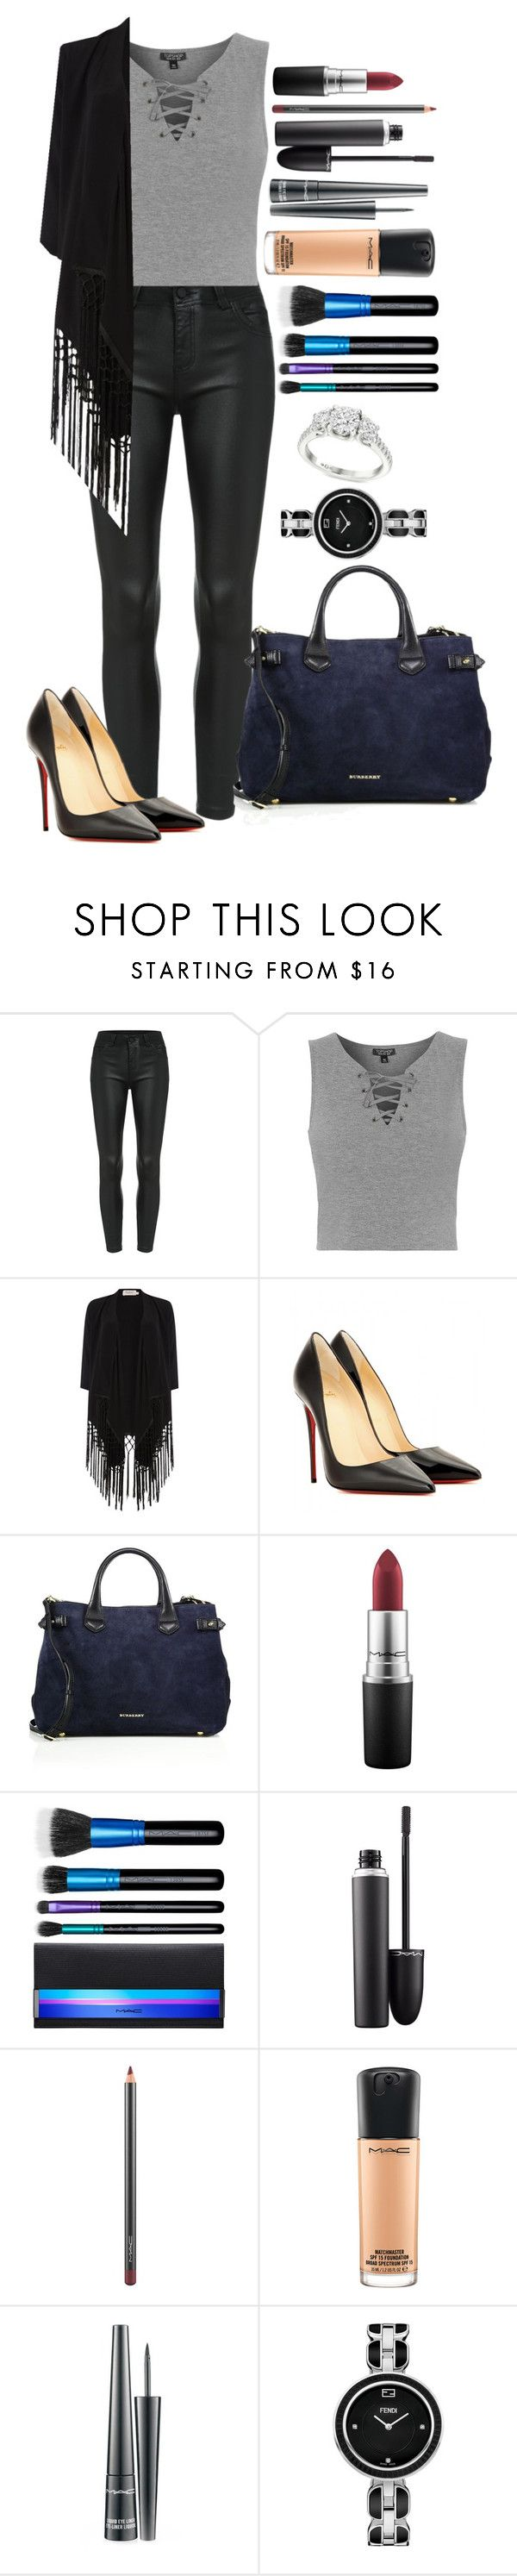 """""""Untitled #1258"""" by fabianarveloc on Polyvore featuring Topshop, Soaked in Luxury, Christian Louboutin, Burberry, MAC Cosmetics and Fendi"""